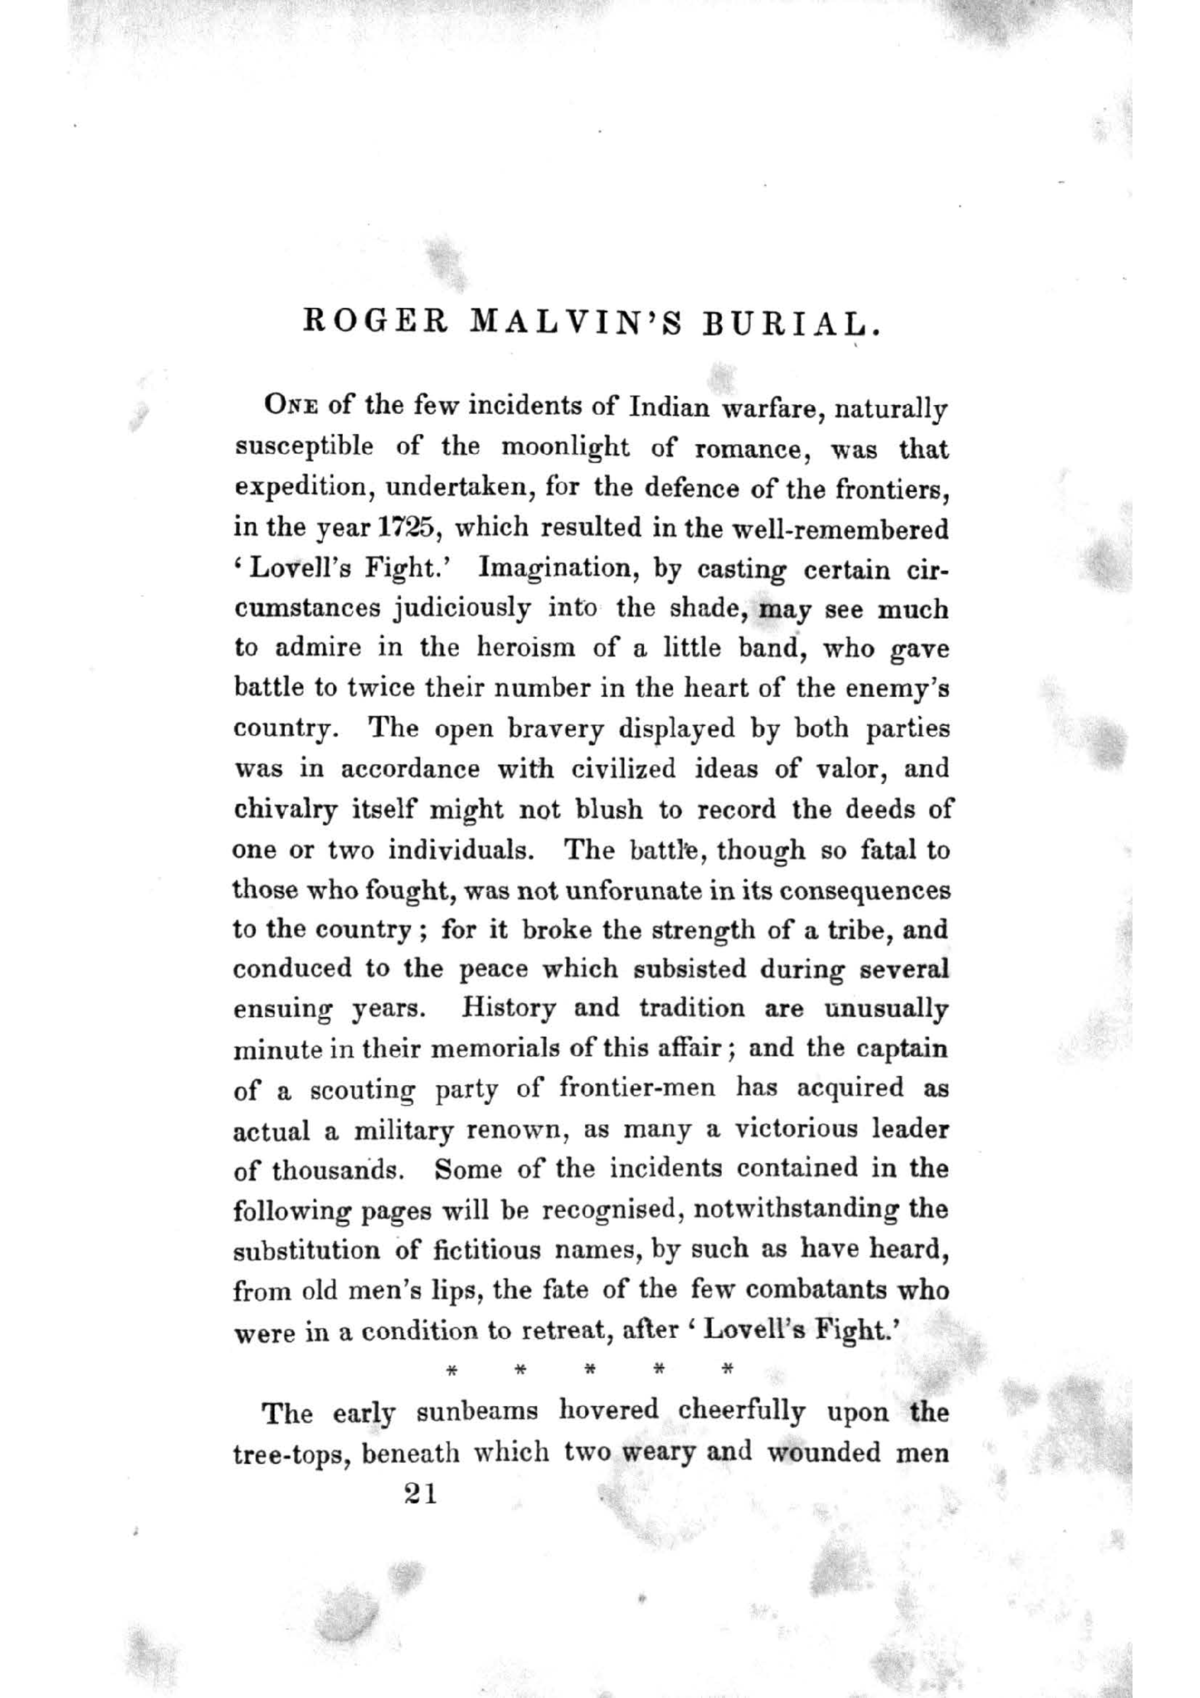 An Overwhelming Sin and Guilt in Roger Malvin's Burial by Nathaniel Hawthorne